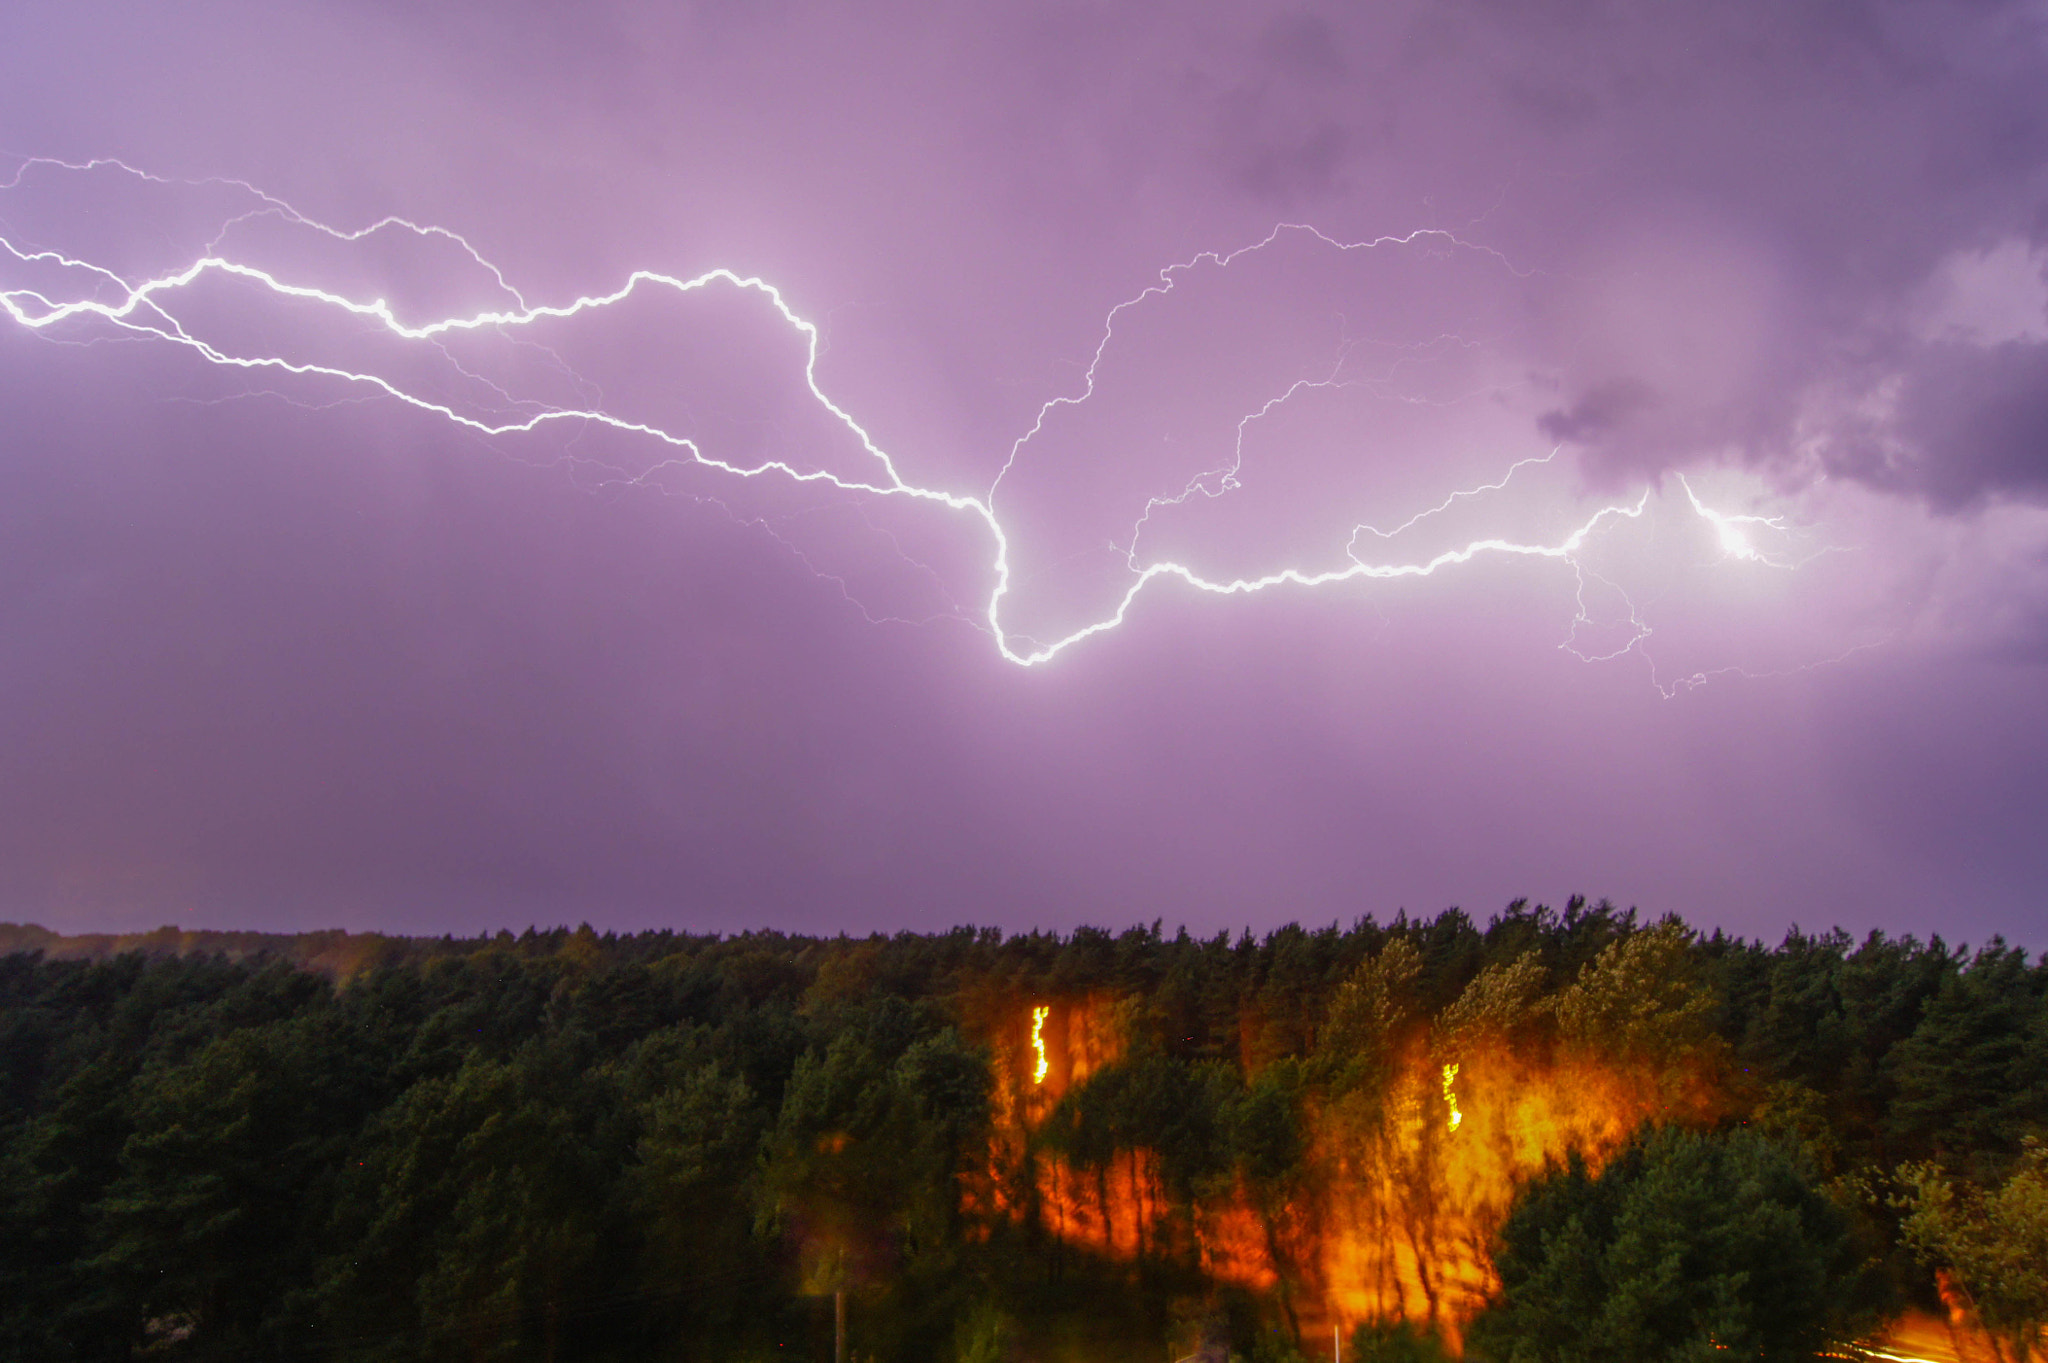 Photograph Lightning by Michał Reich on 500px